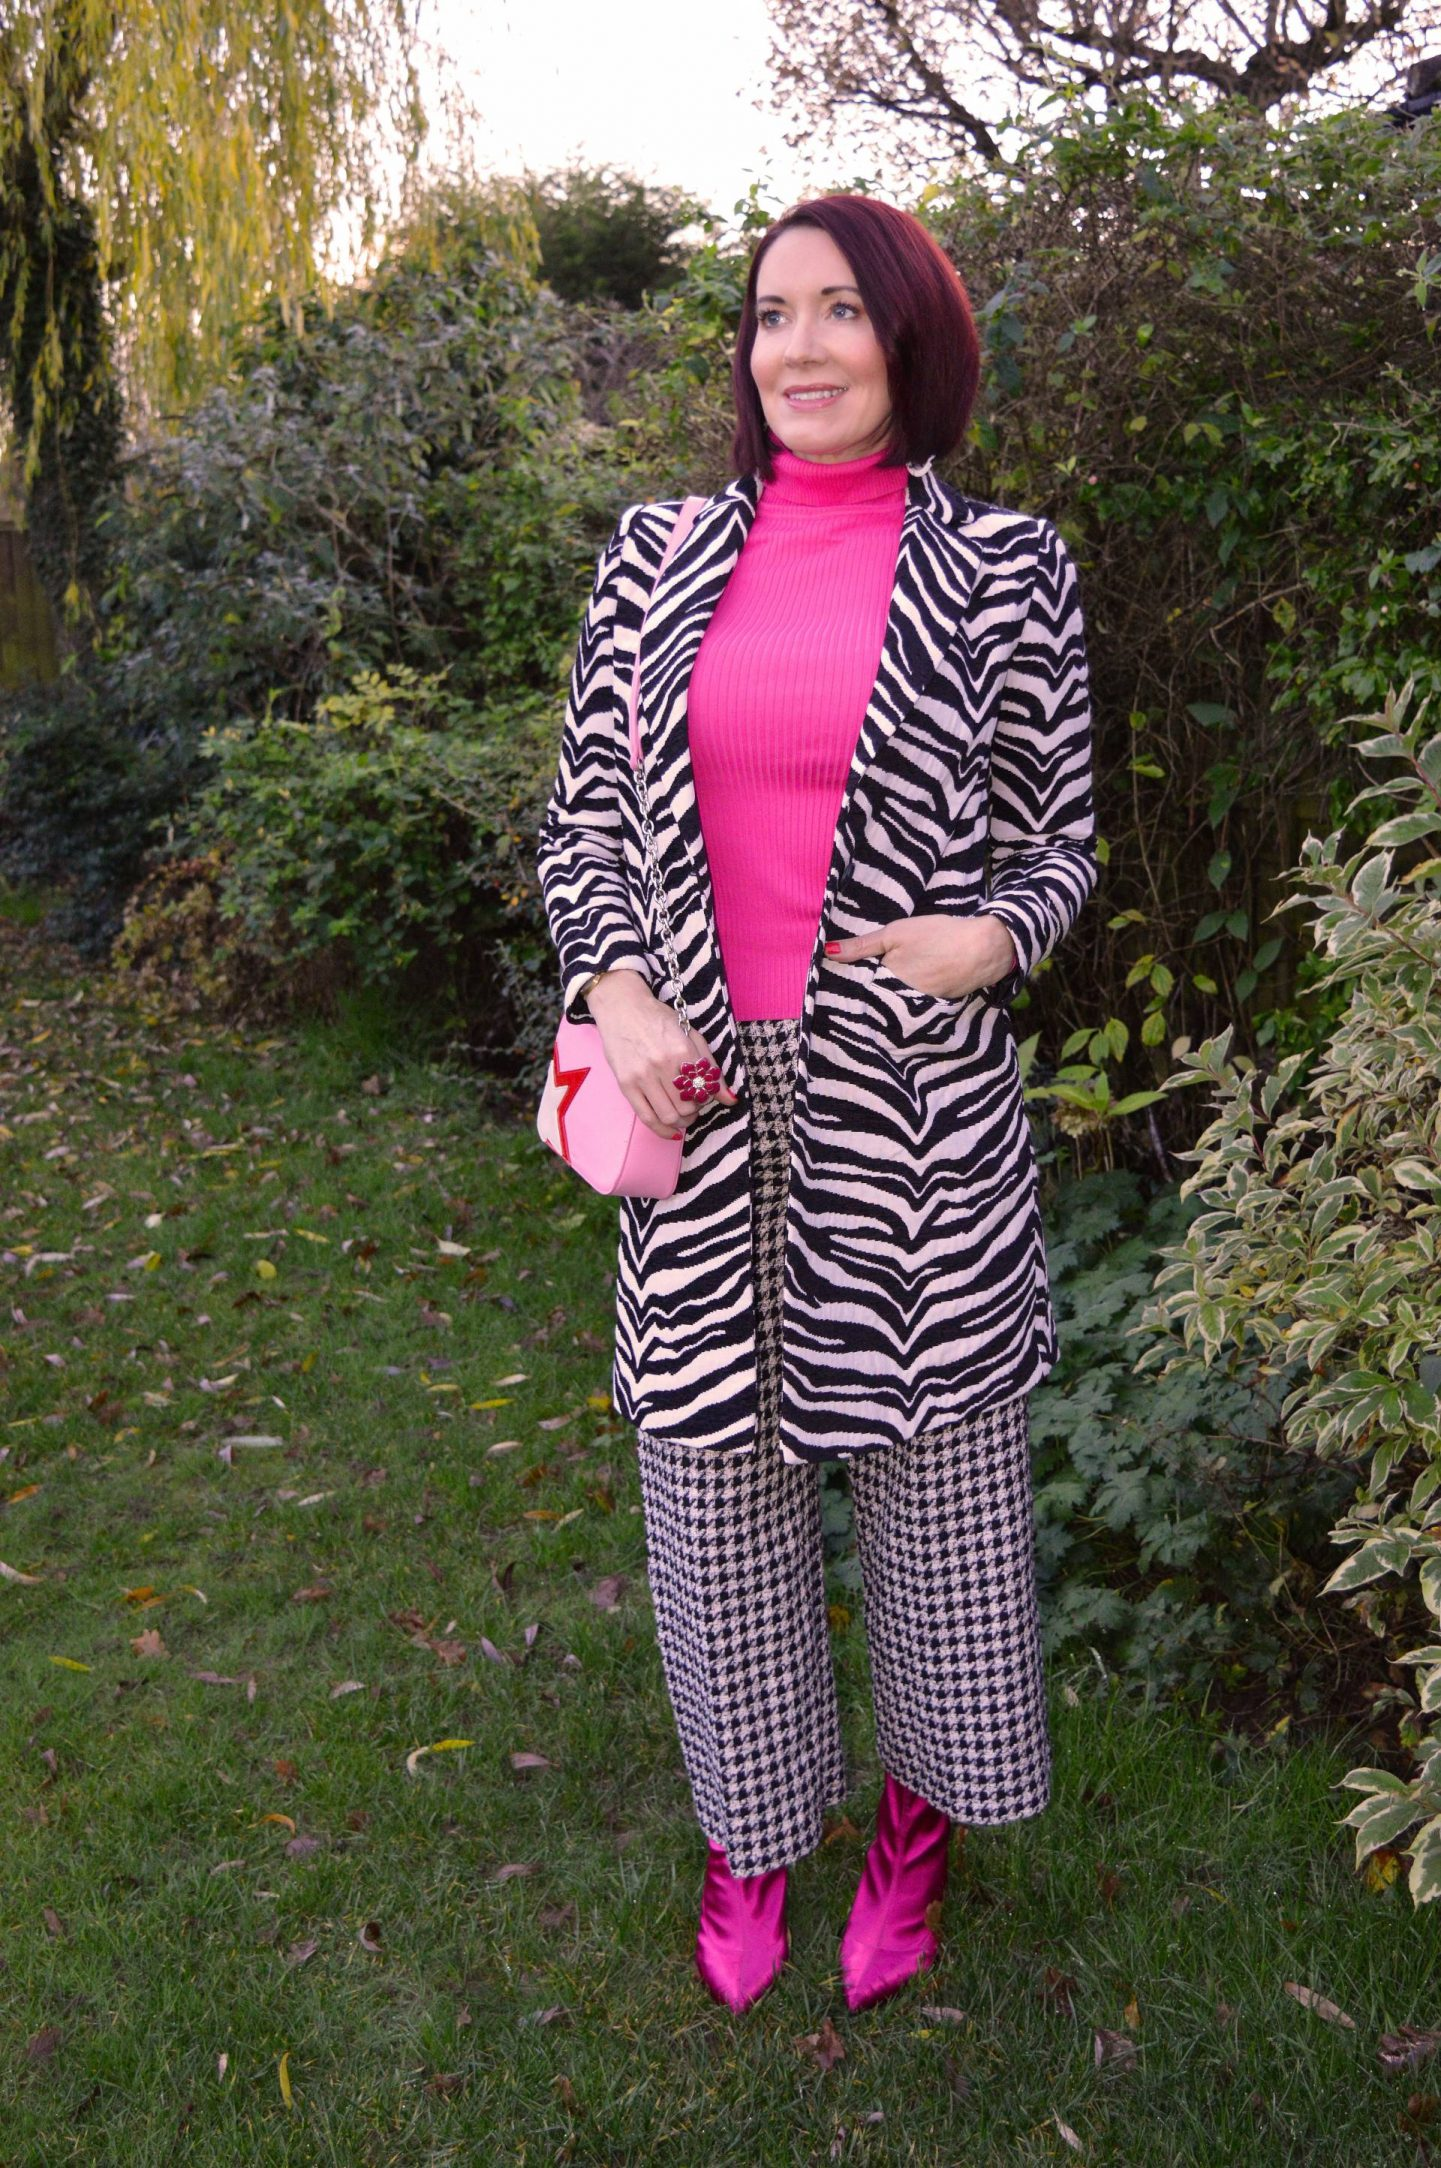 Zebra Print and Houndstooth With Bright Pink, Dept.19 zebra print coat, Zara houndstooth trousers, New Look neon pink ribbed roll neck jumper, Marks & Spencer pink satin sock boots